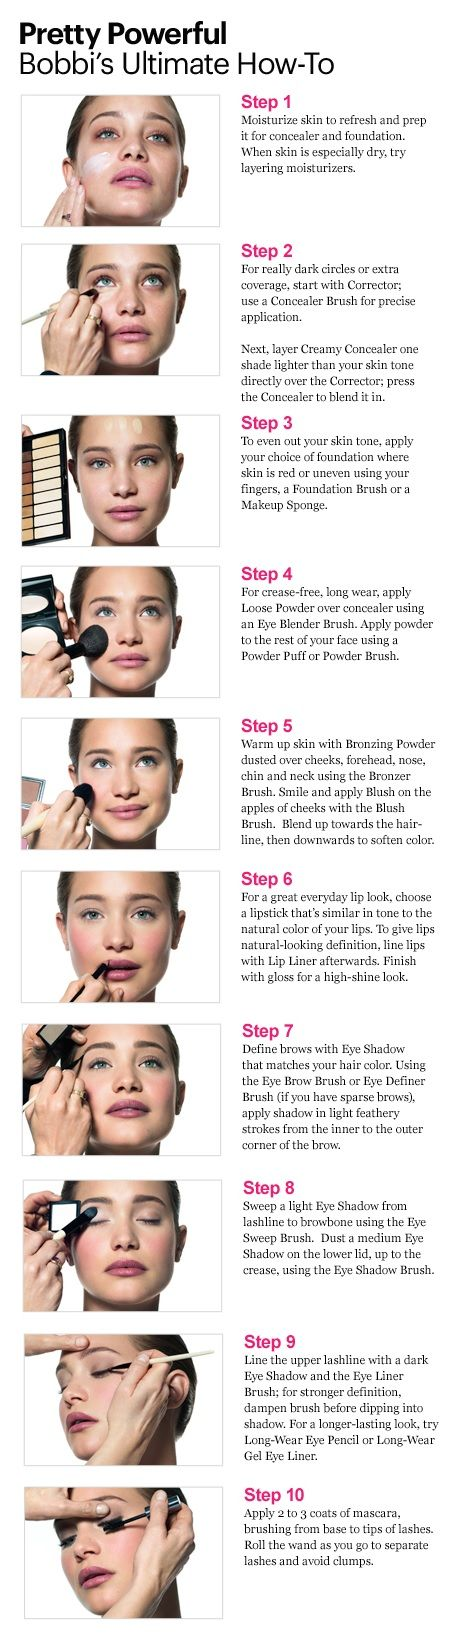 Bobbi's Make Up Lesson - Lesson 1 - Pretty Powerfull - Bobbi's Ultimate How-To